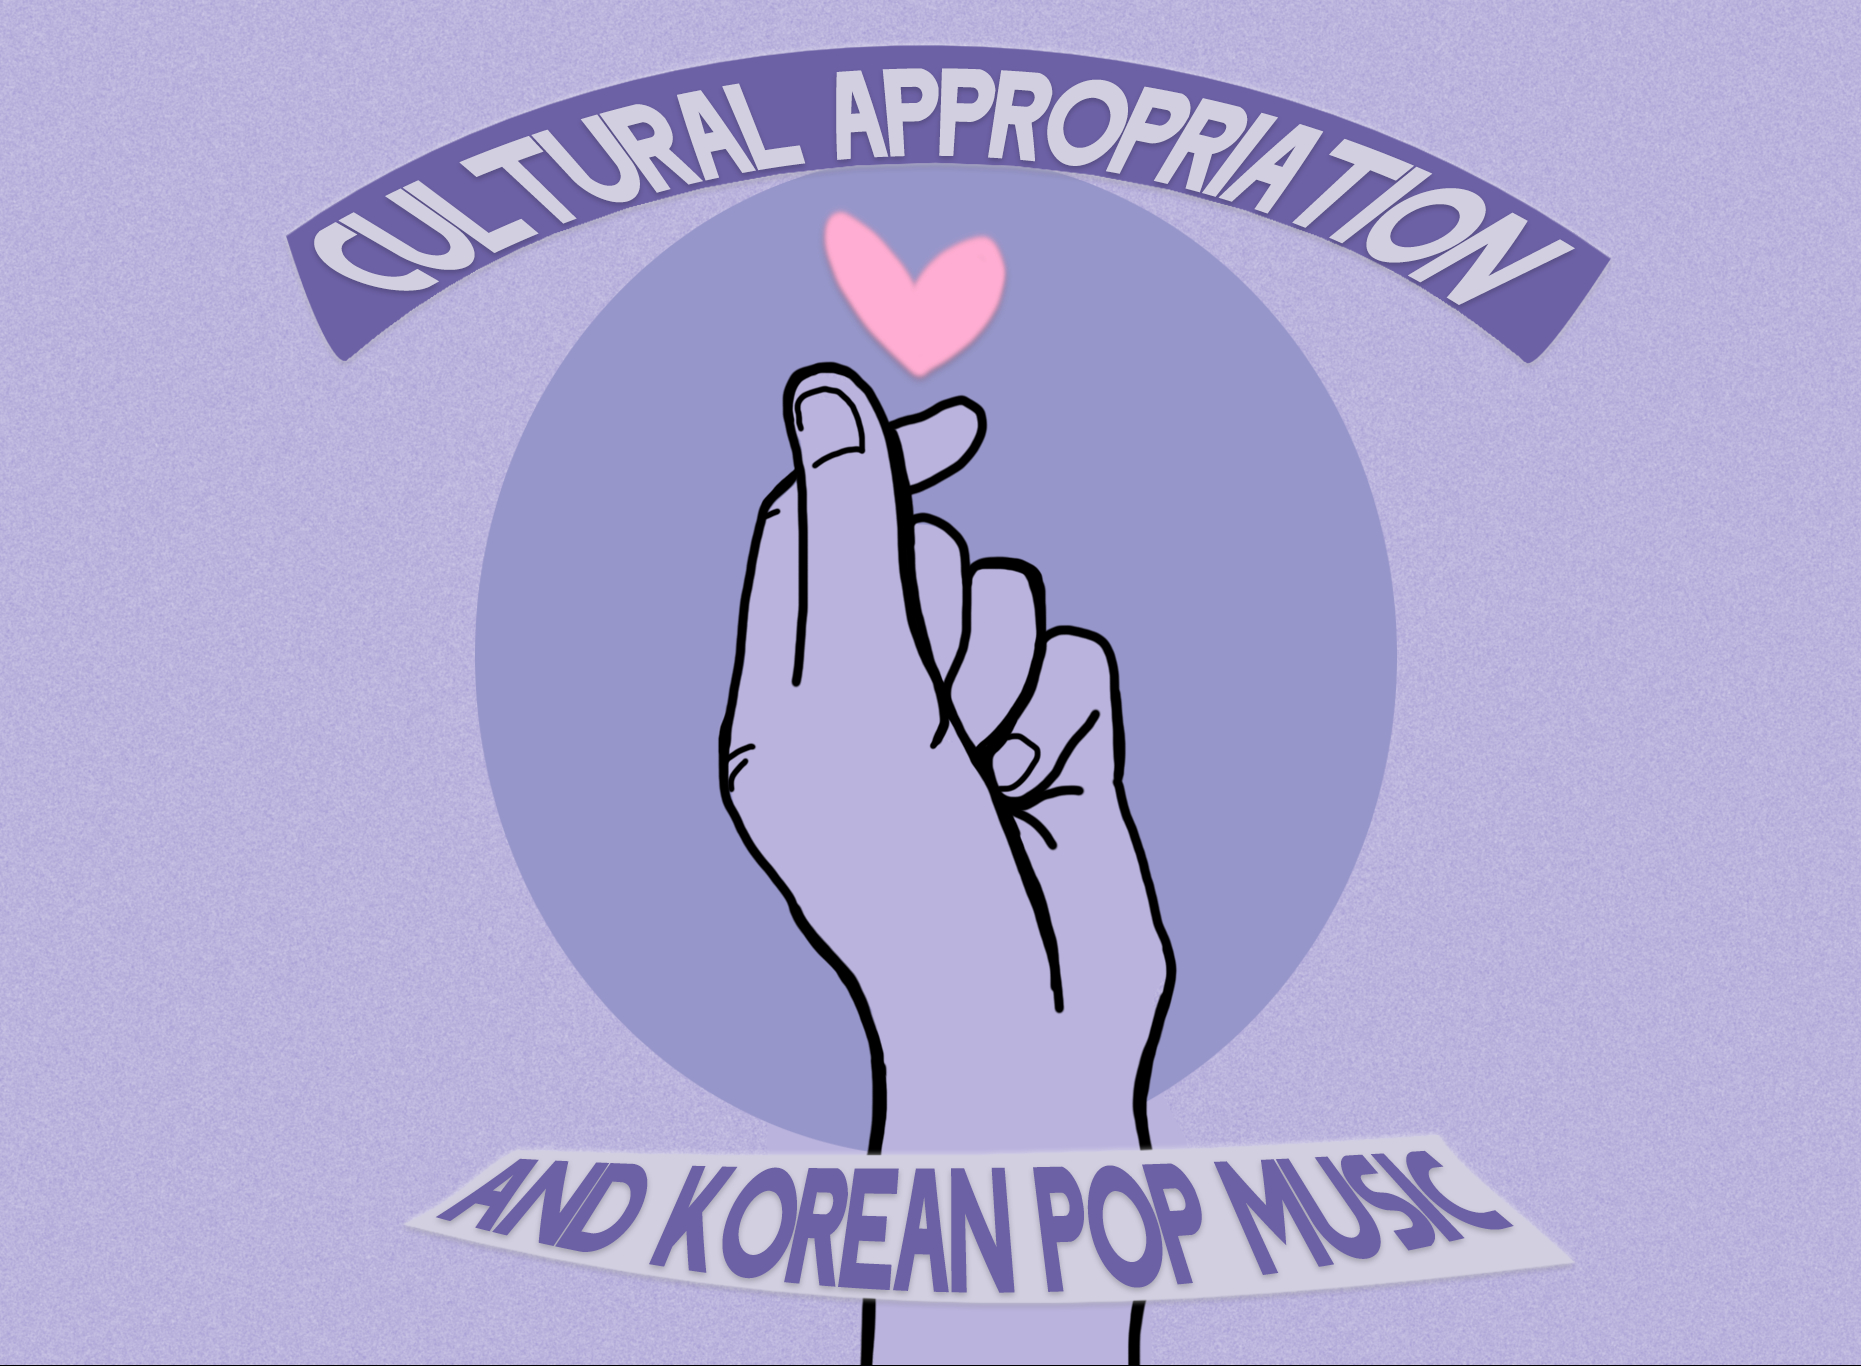 Chasing the aesthetic: the world of K-pop and cultural appropriation